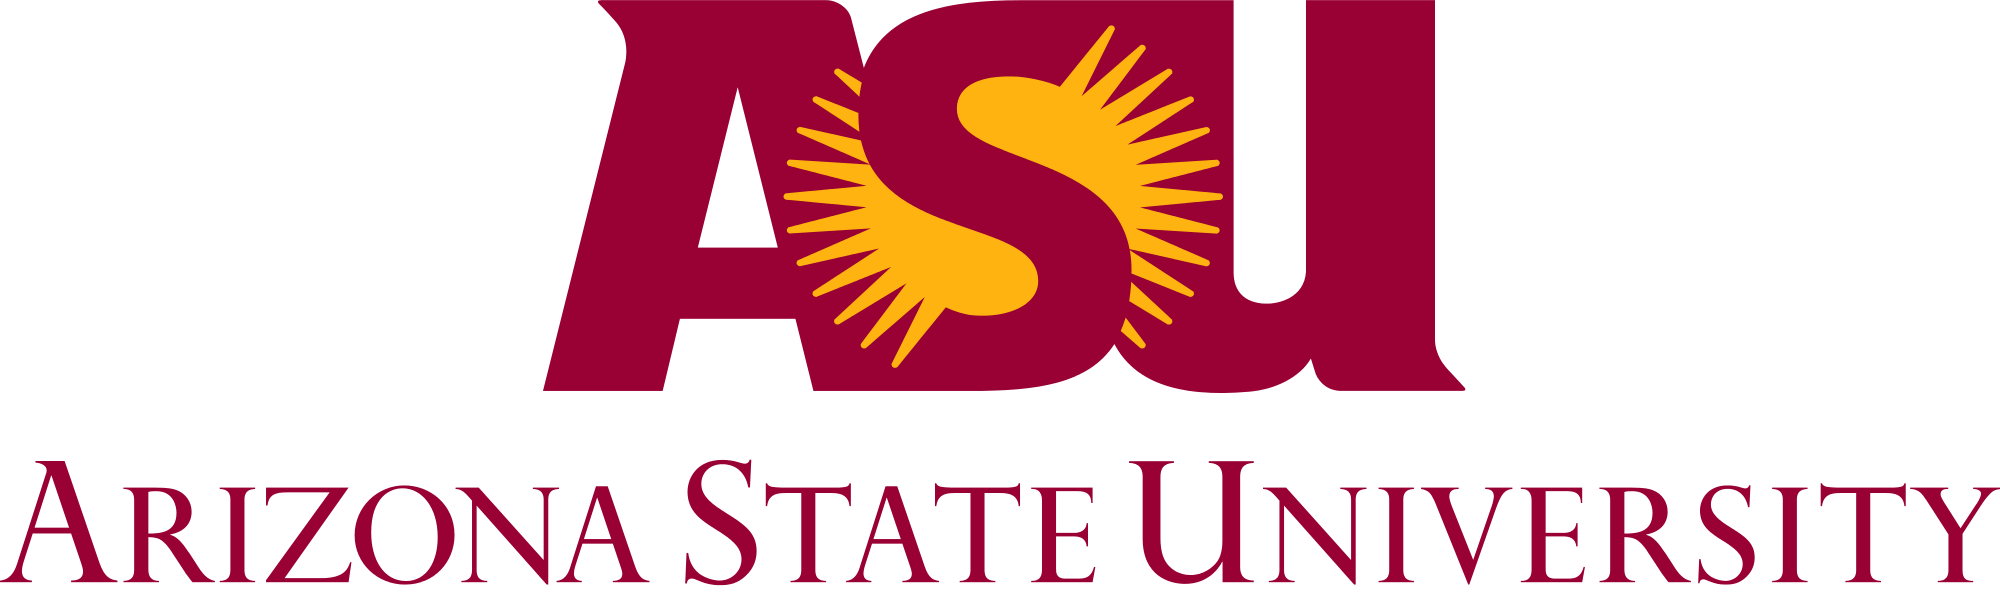 arizona_state_university_logo